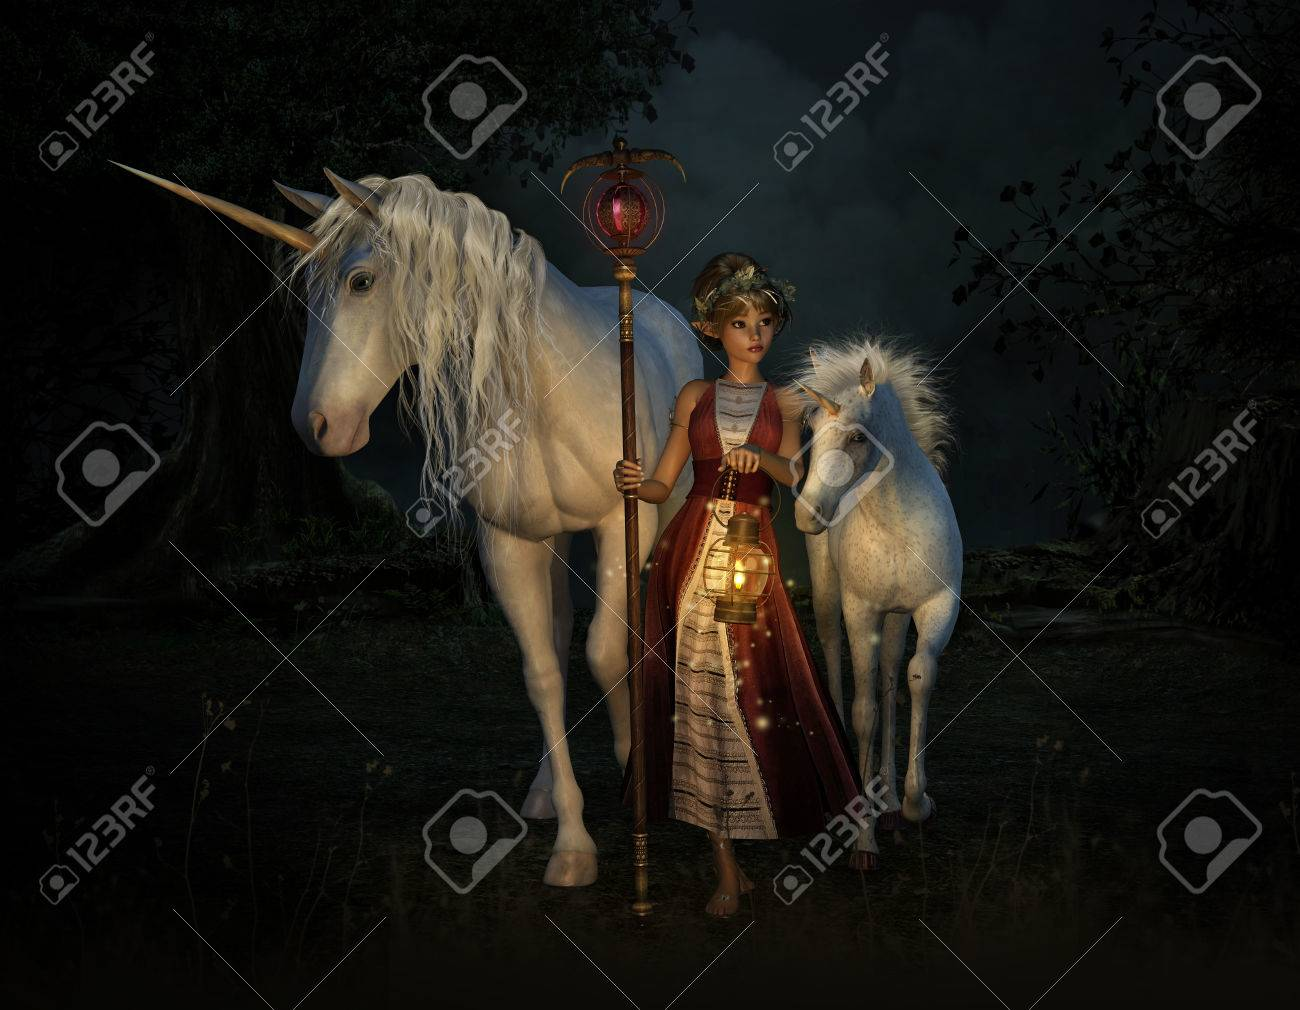 3d computer graphics of a girl with staff and lantern and two